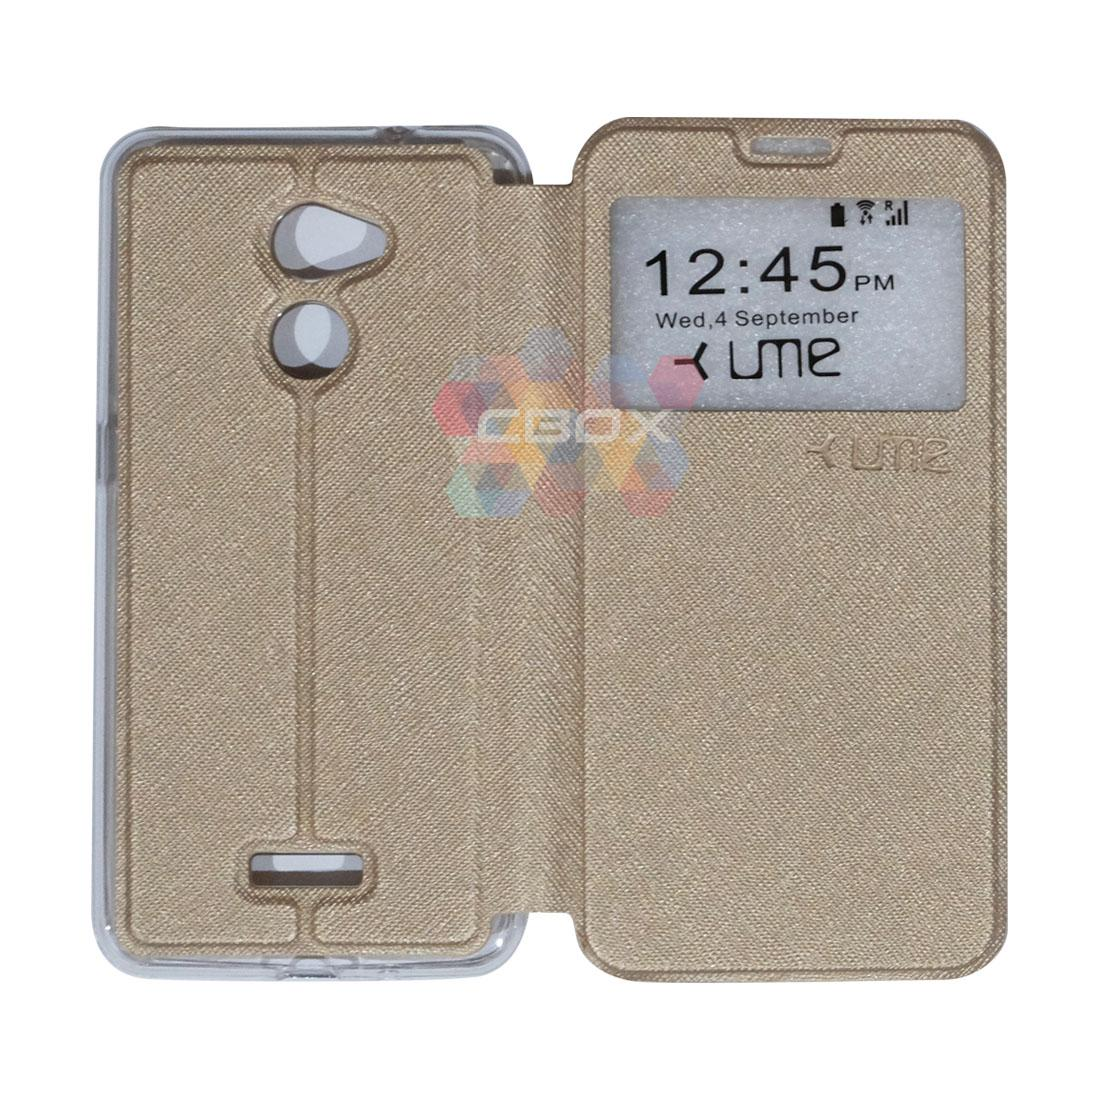 Ume Flip Leather Phone Cover Coolpad Fancy 3 E503 Ukuran 5.0 Inch Sarung Case / Flipshell Coolpad Fancy 3 E503 / FlipCover Coolpad Fancy 3 E503 / Leather Case Coolpad Fancy 3 E503 / Sarung HP Coolpad Fancy 3 E503 View - Gold